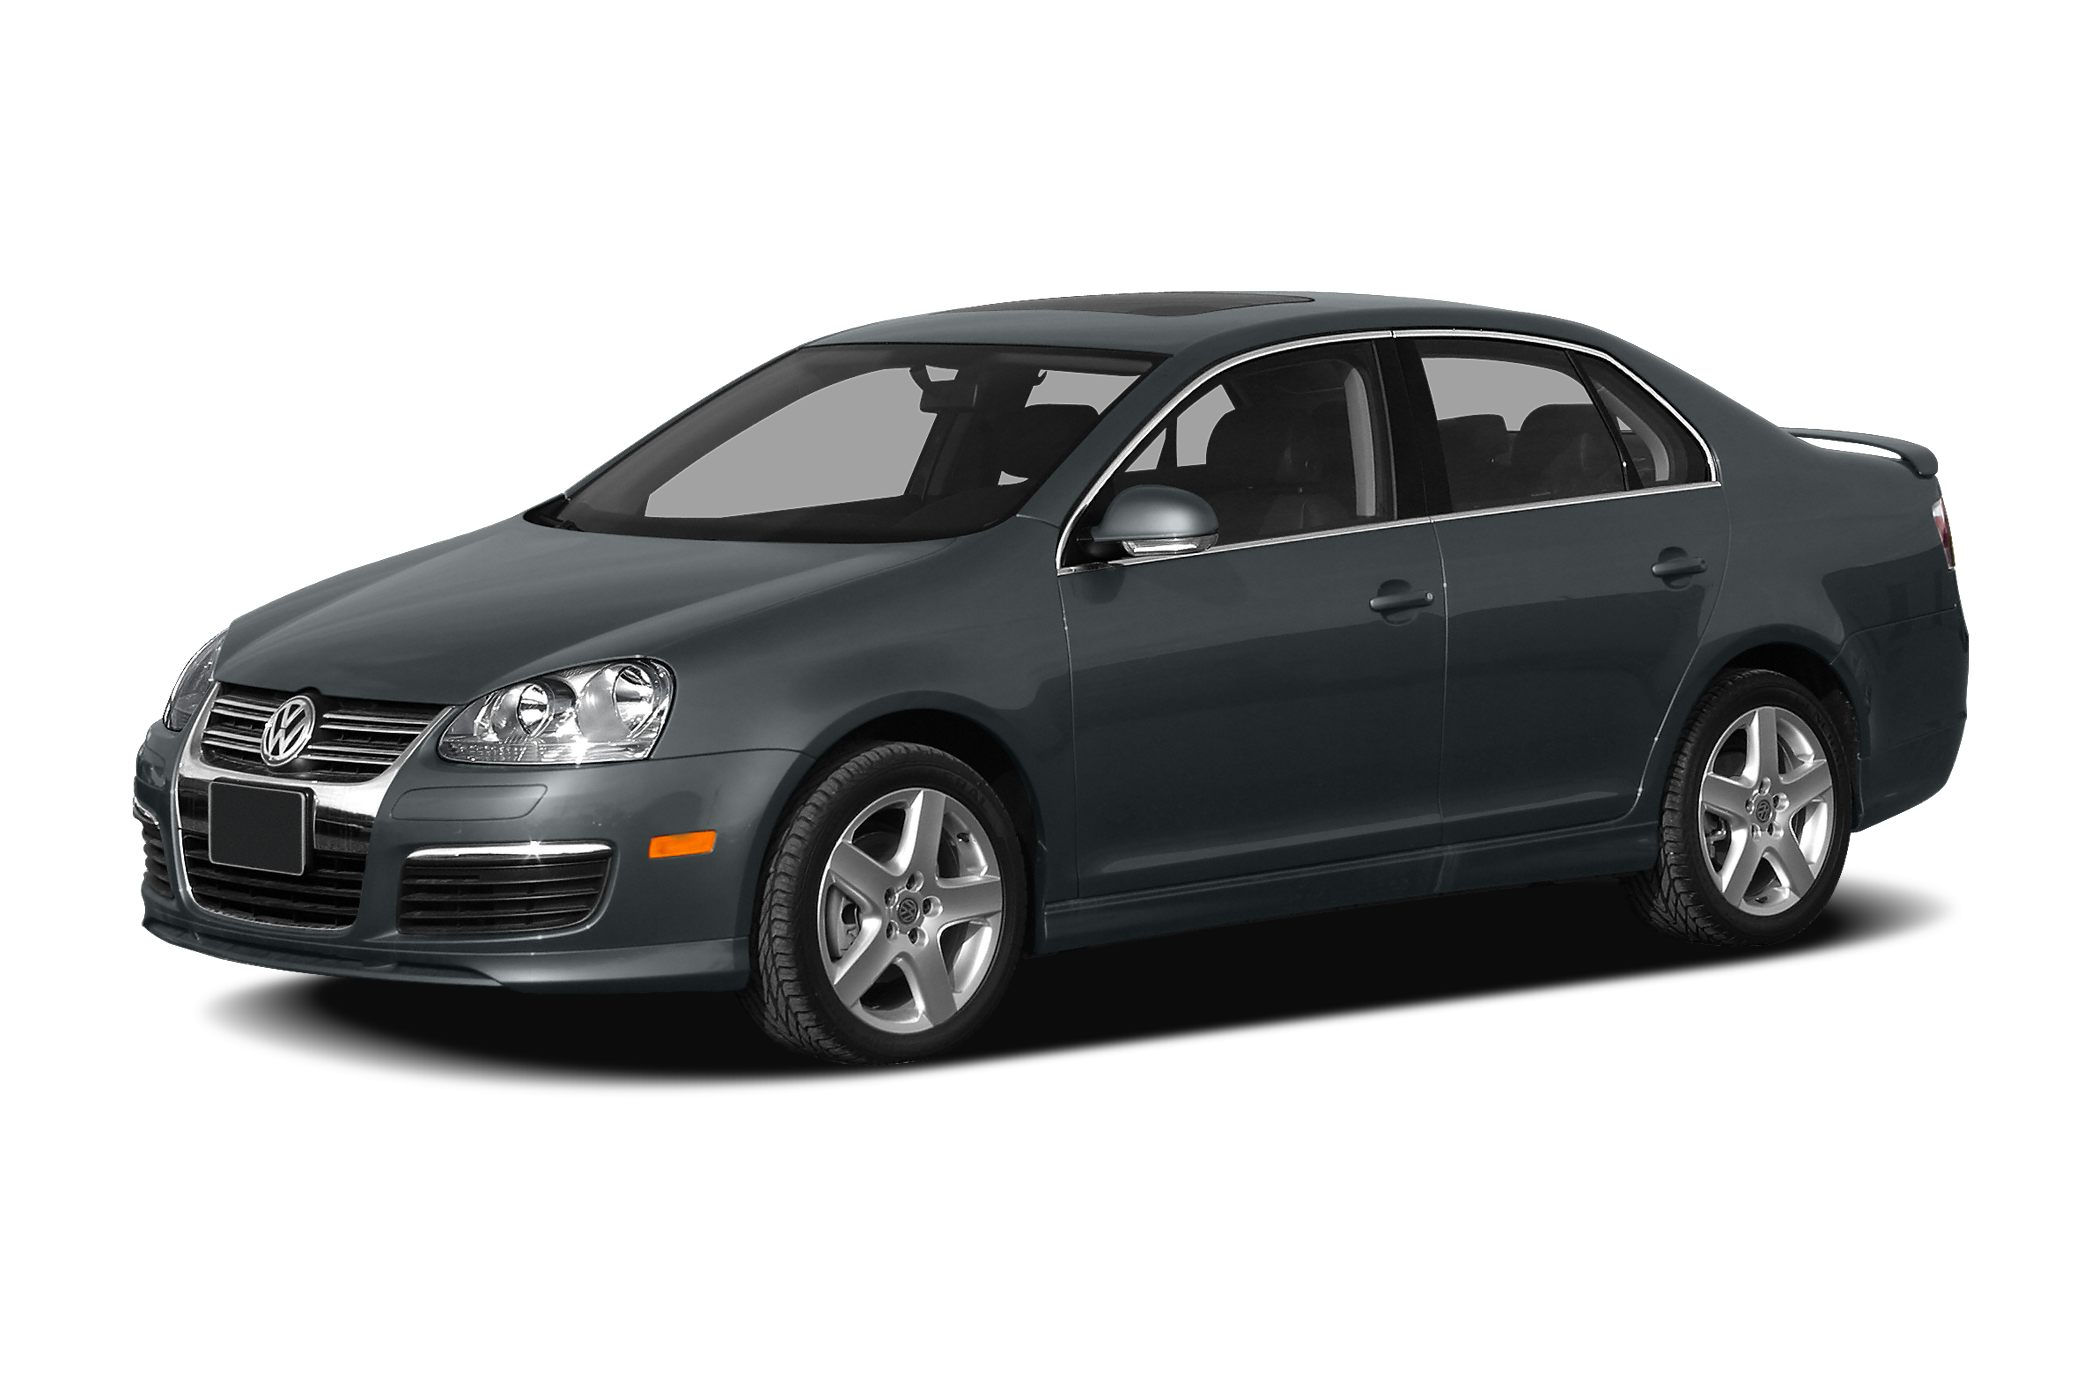 2010 Volkswagen Jetta TDI Sedan for sale in Omaha for $11,990 with 100,951 miles.